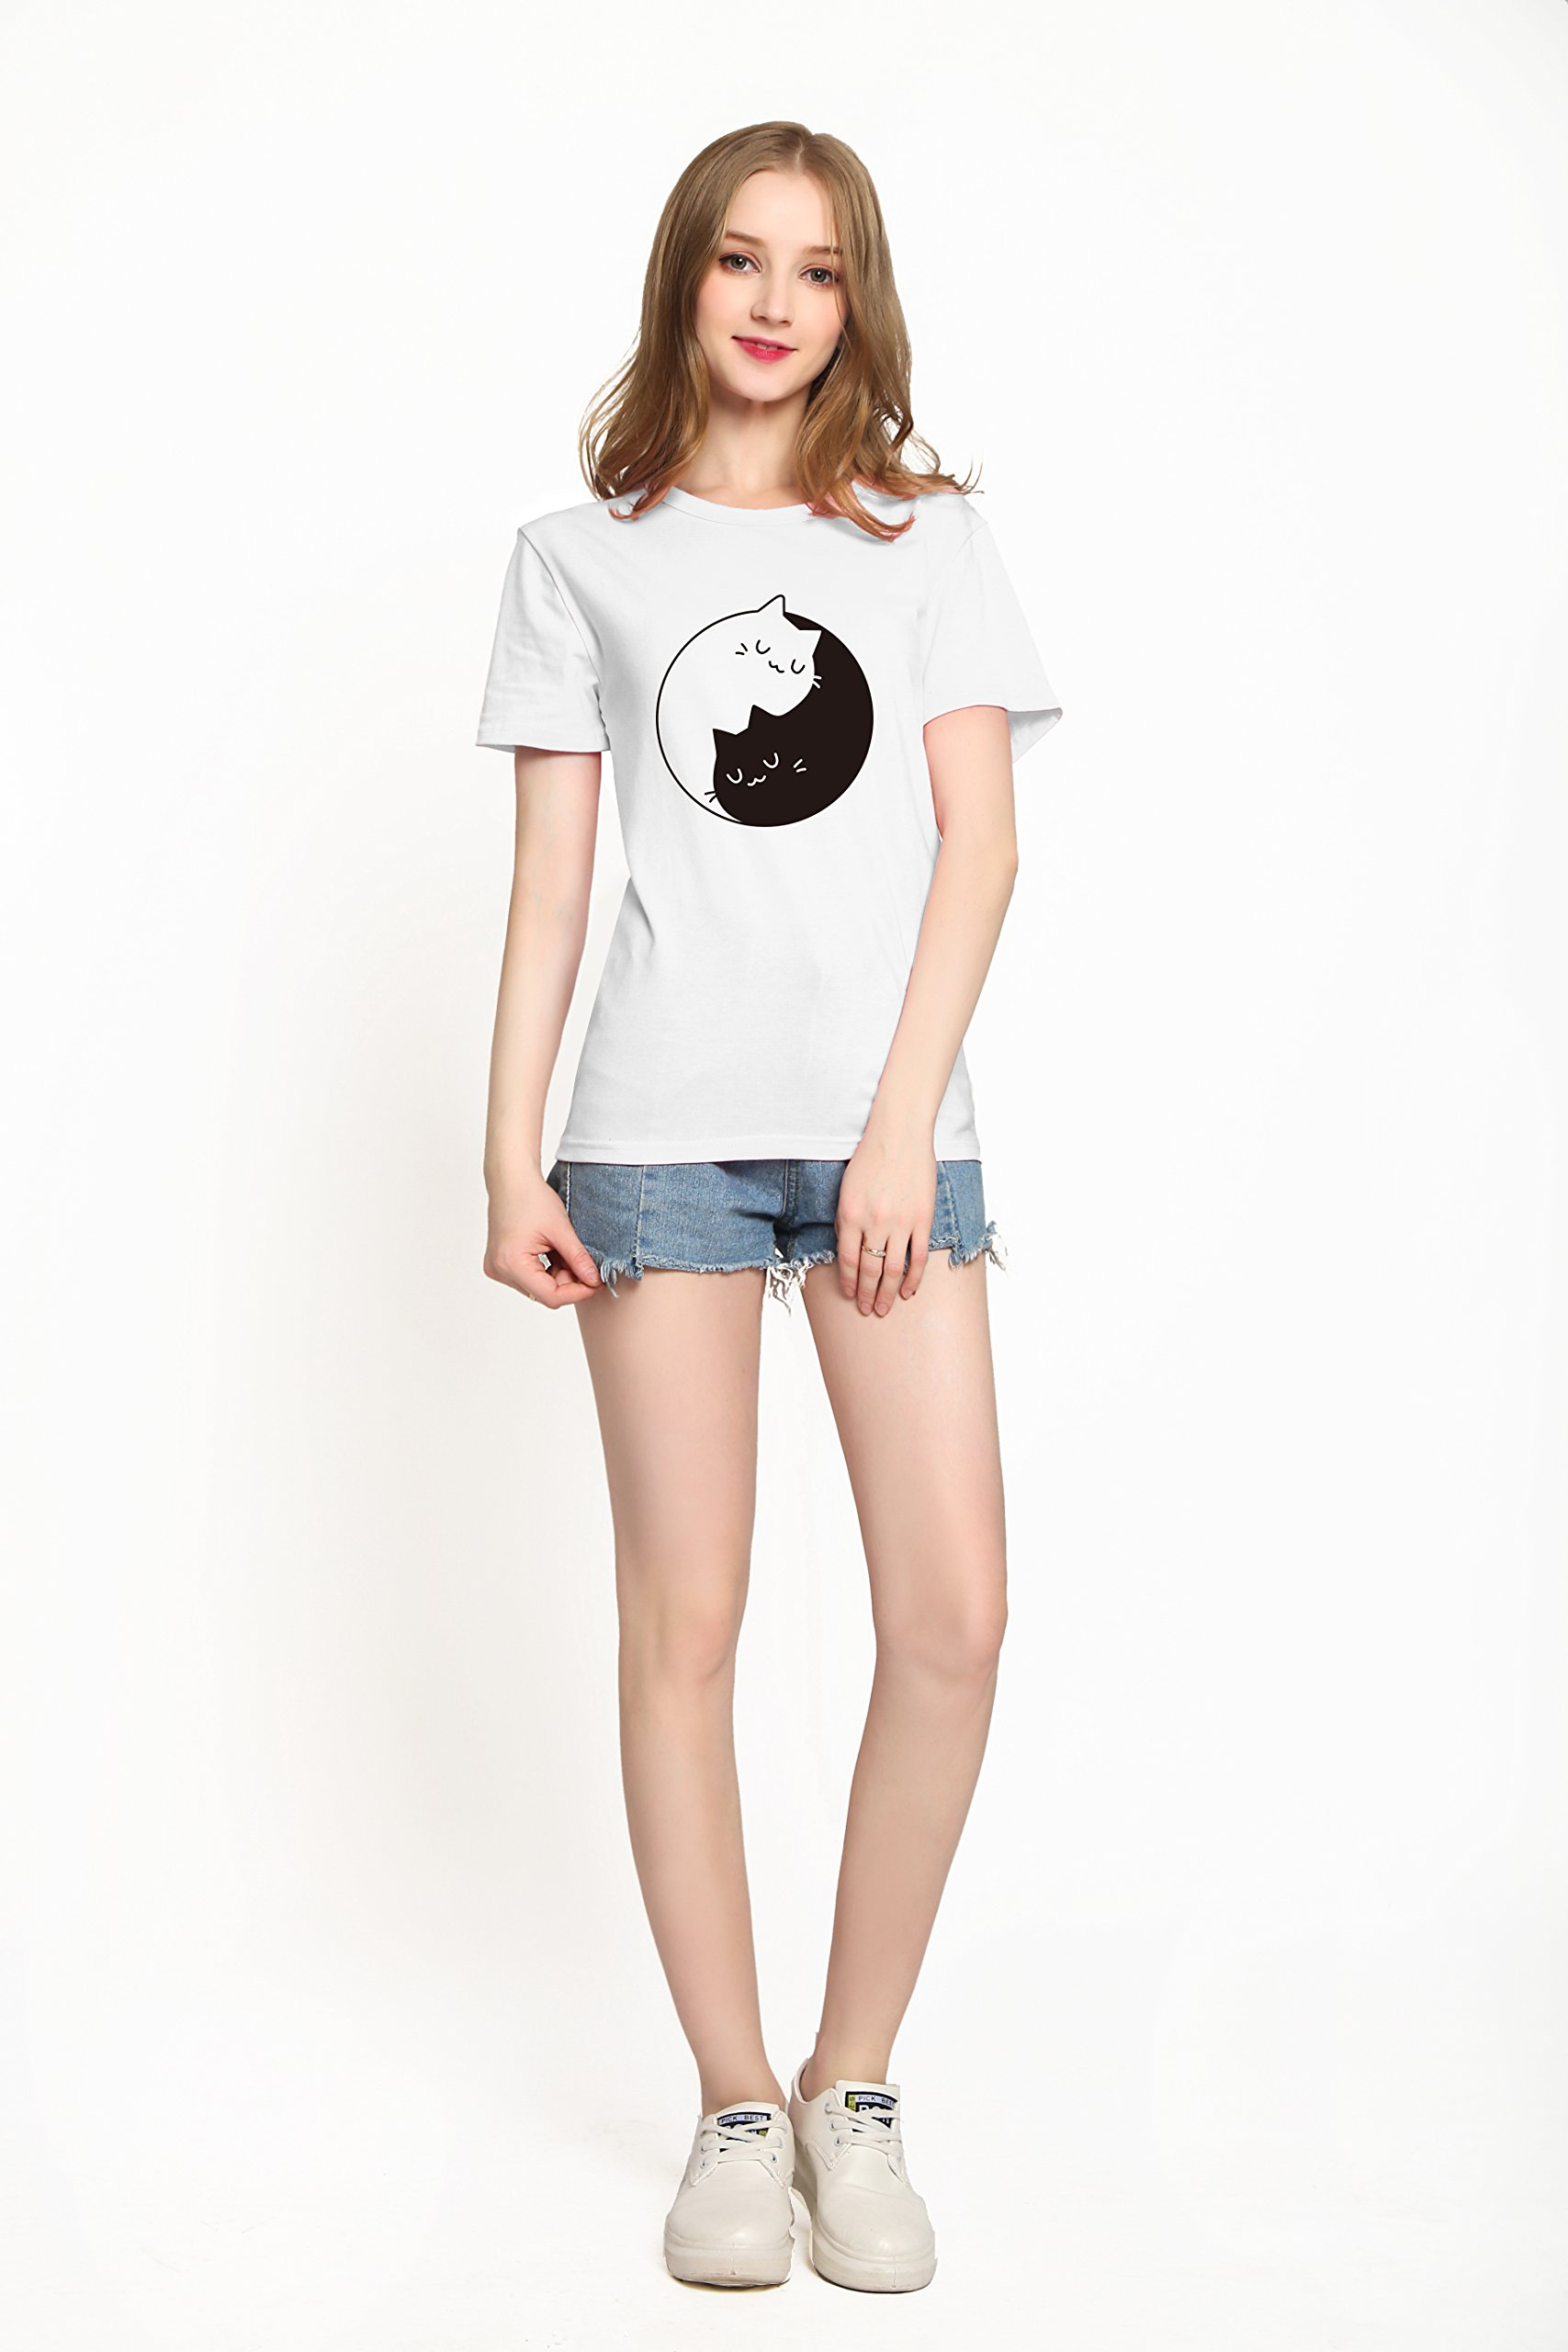 PINJIA Womens Cotton Letter Printed Pullover Tshirts Top Tees(MX15)(L, White Tai Chi Cat)